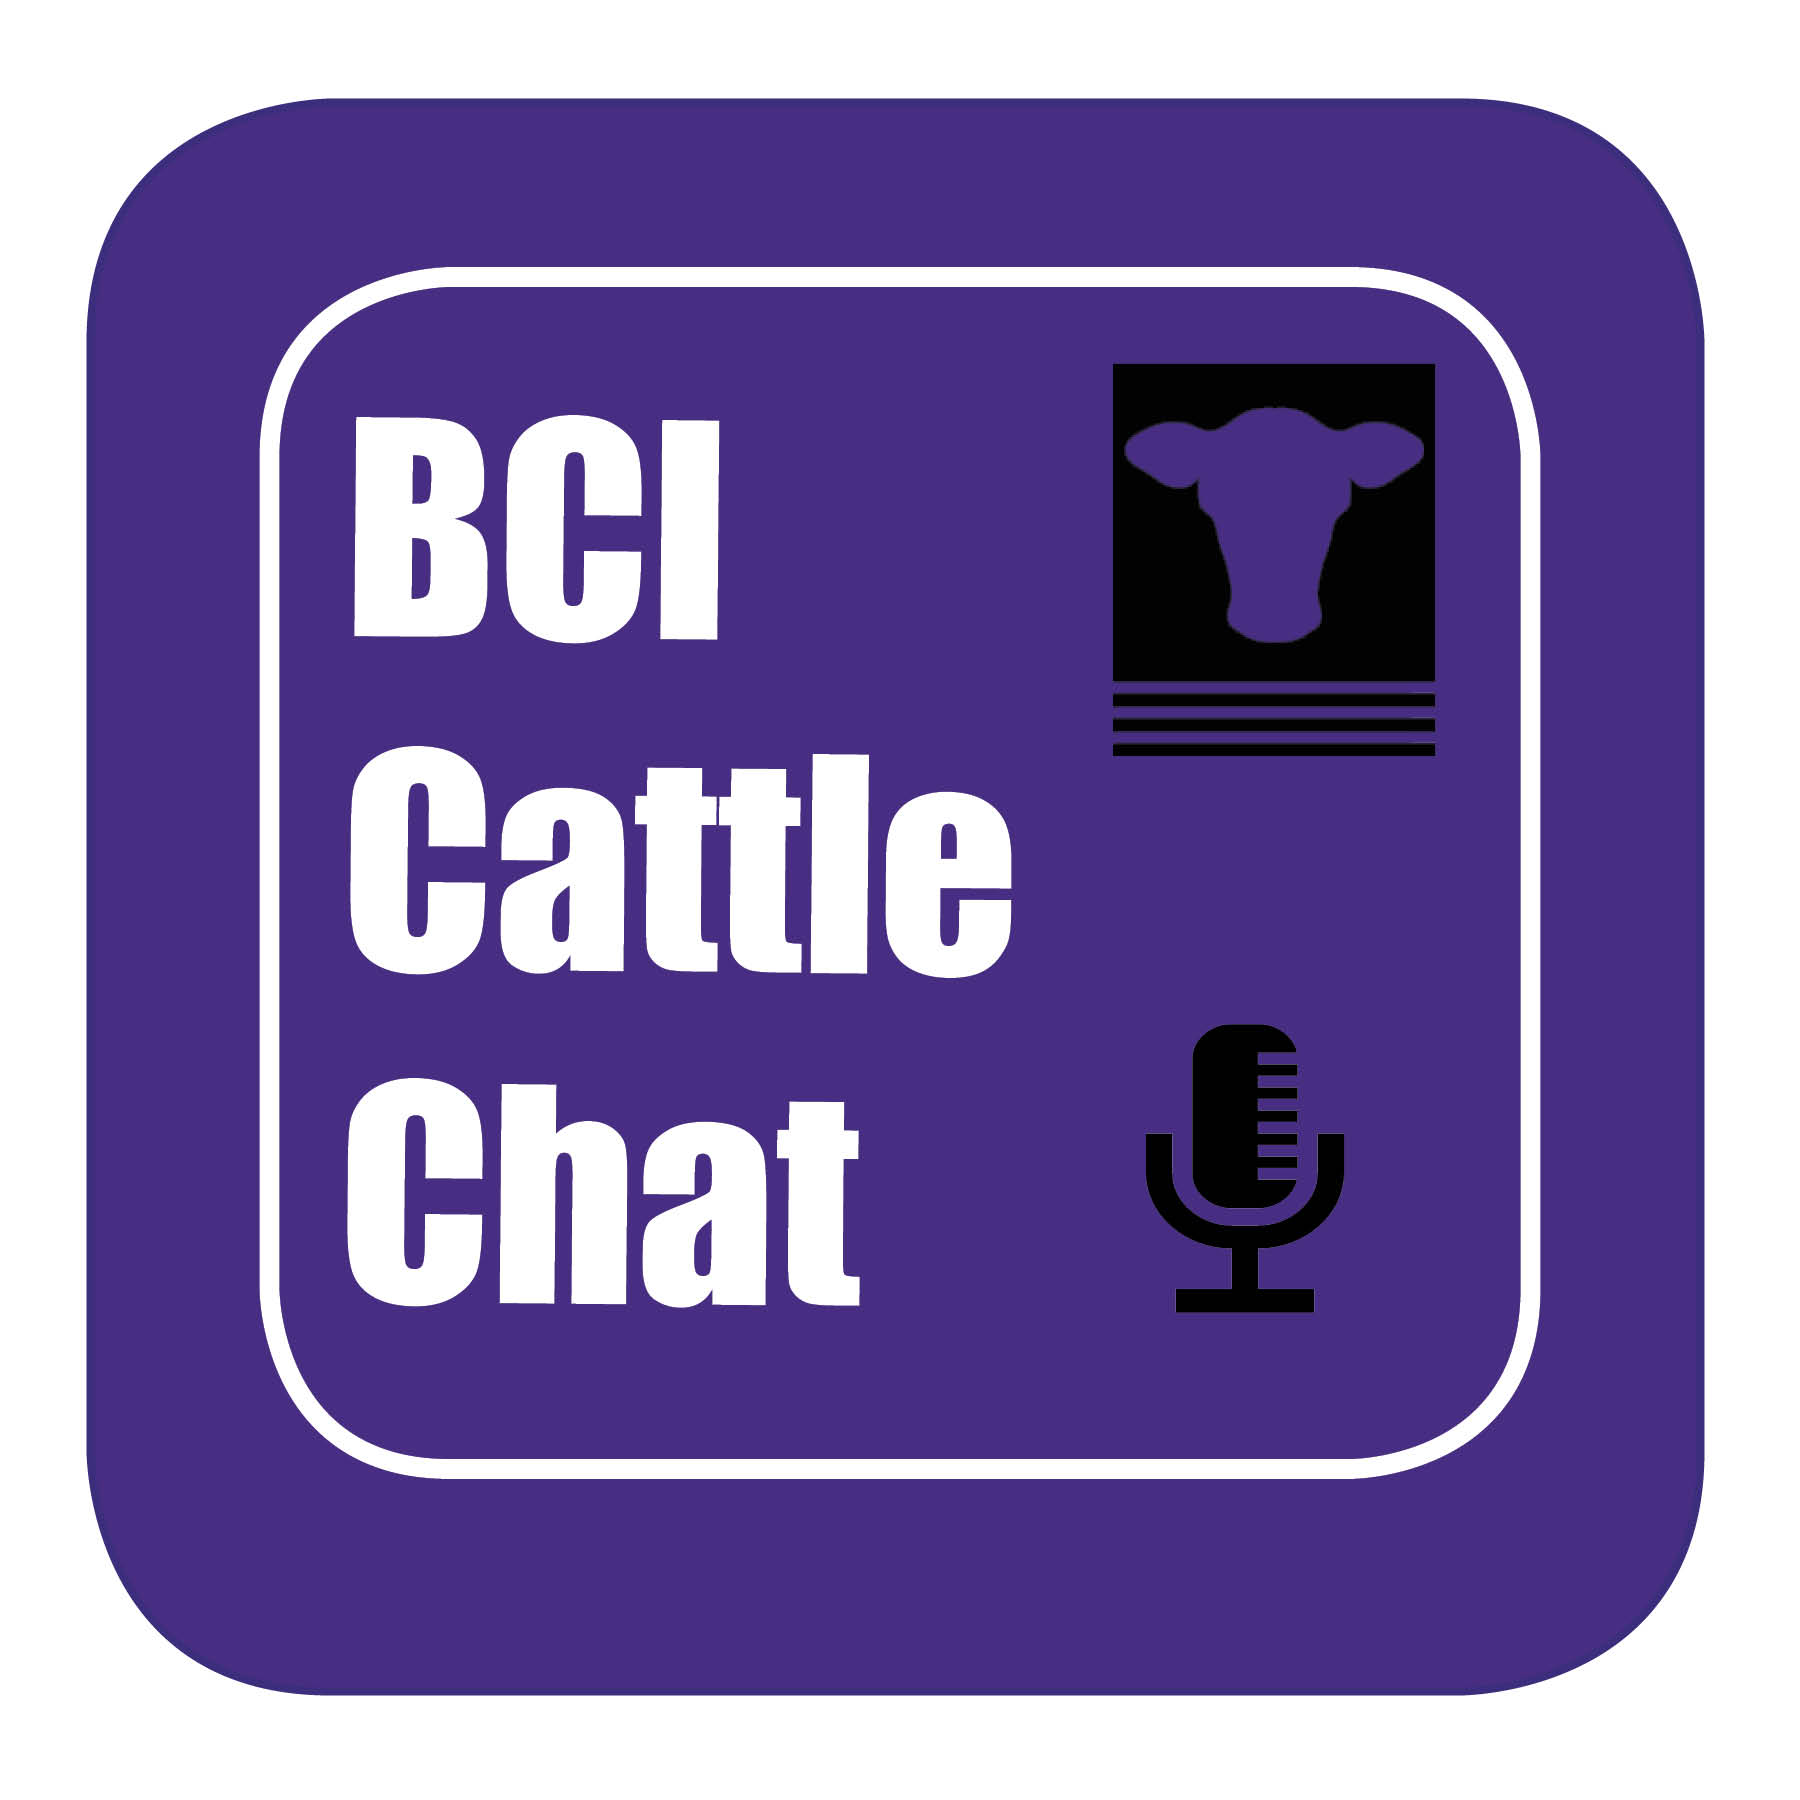 BCI Cattle Chat - Episode 3